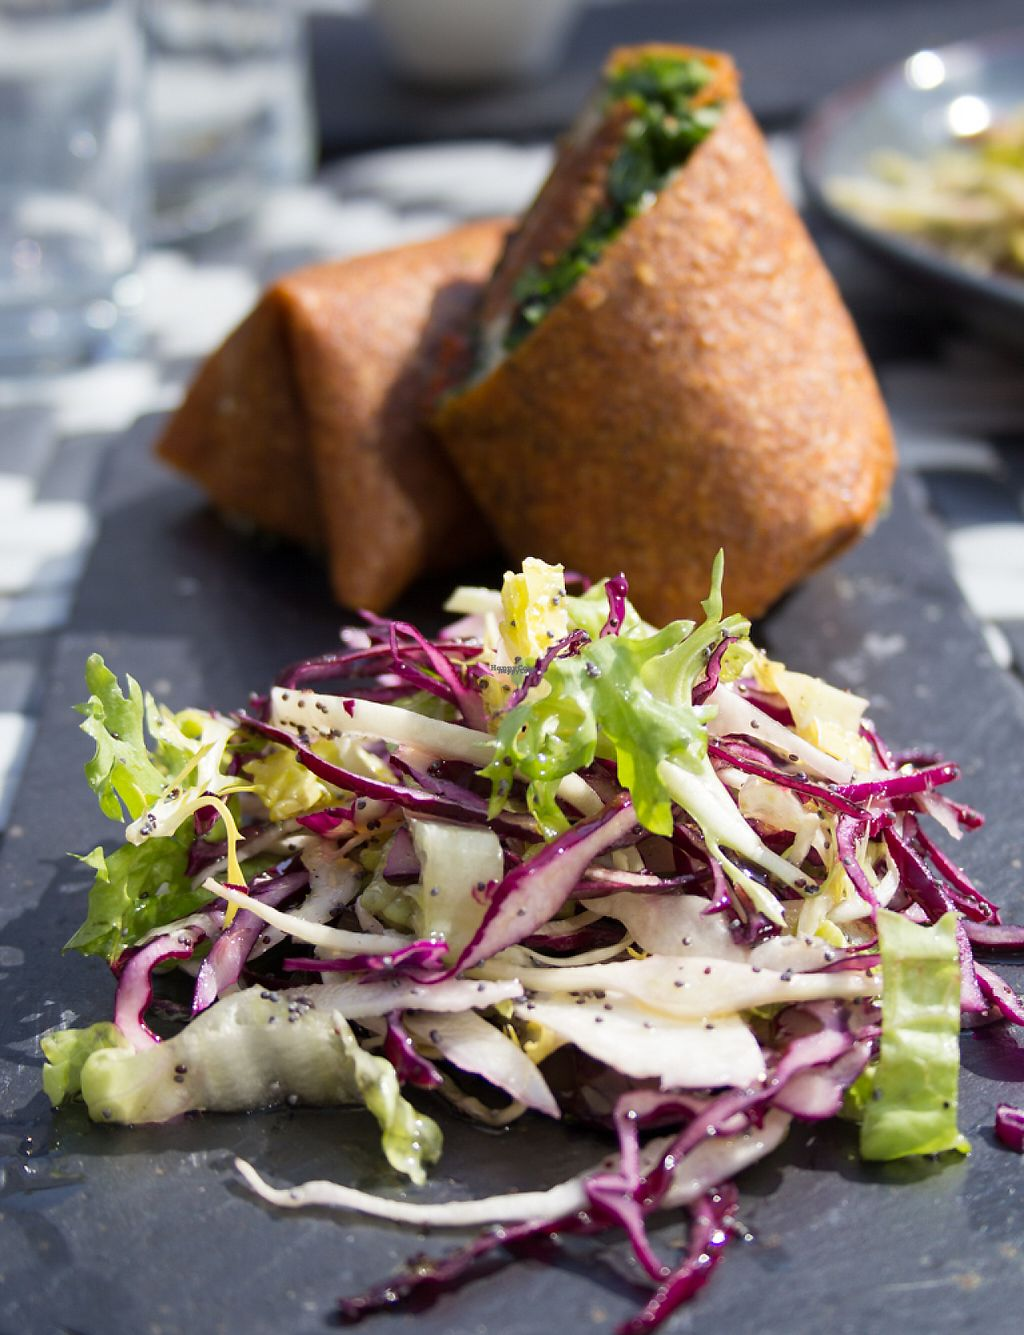 """Photo of CLOSED: Nama Artisan Raw Foods  by <a href=""""/members/profile/loloford"""">loloford</a> <br/>Breakfast wrap and coleslaw <br/> April 17, 2017  - <a href='/contact/abuse/image/36686/249316'>Report</a>"""